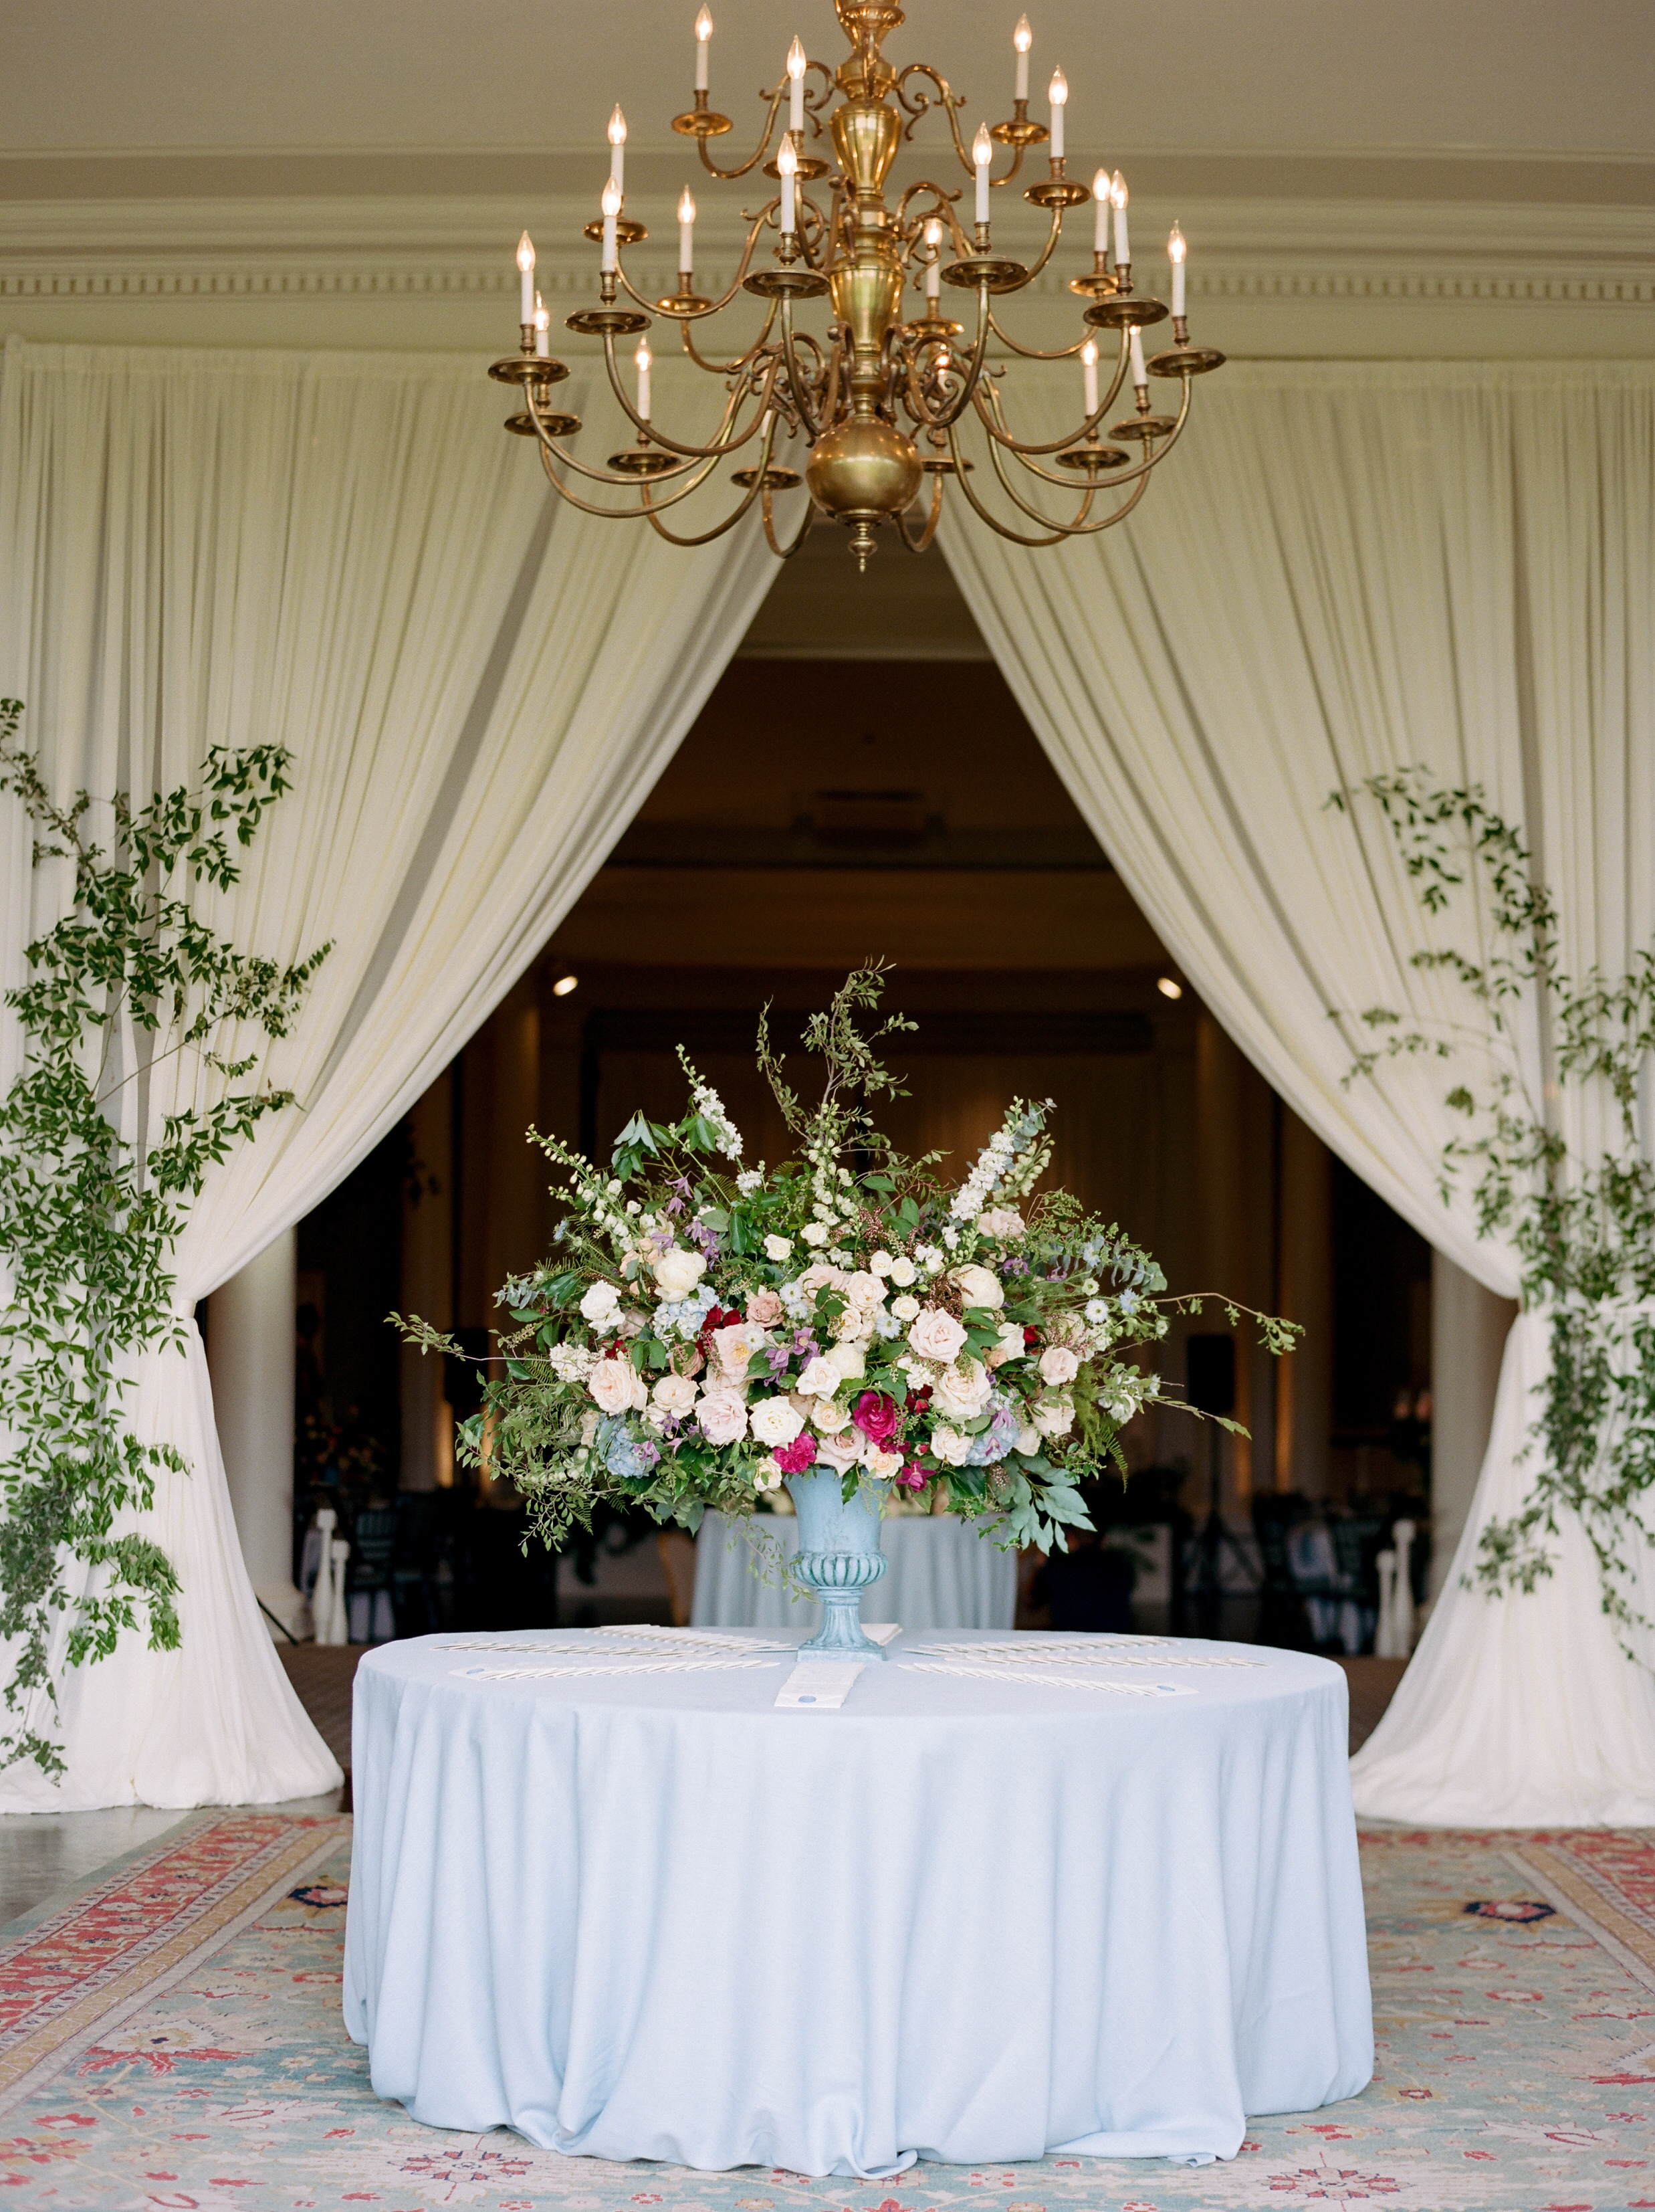 Jane Austen meets Monet - Mary + DanPhotography: Josh and Dana FernandezPlanning: Kelly DoonanFlorist: MibellarosaVenue: Houston Country Club